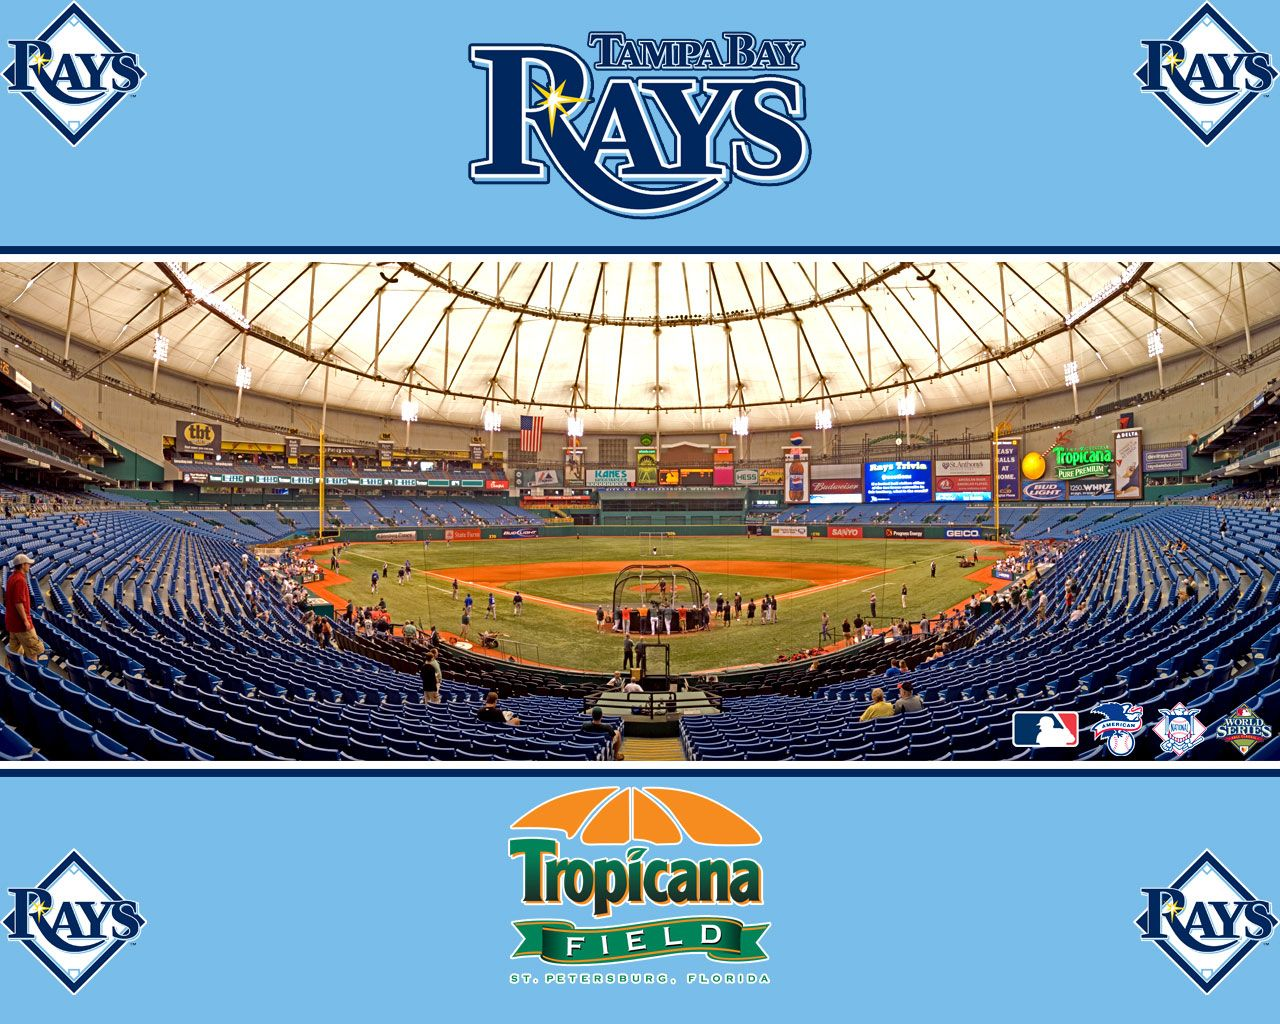 I Want To See A Tampa Bay Rays Game At Tropicana Field Tampa Bay Rays Tampa Tampa Bay